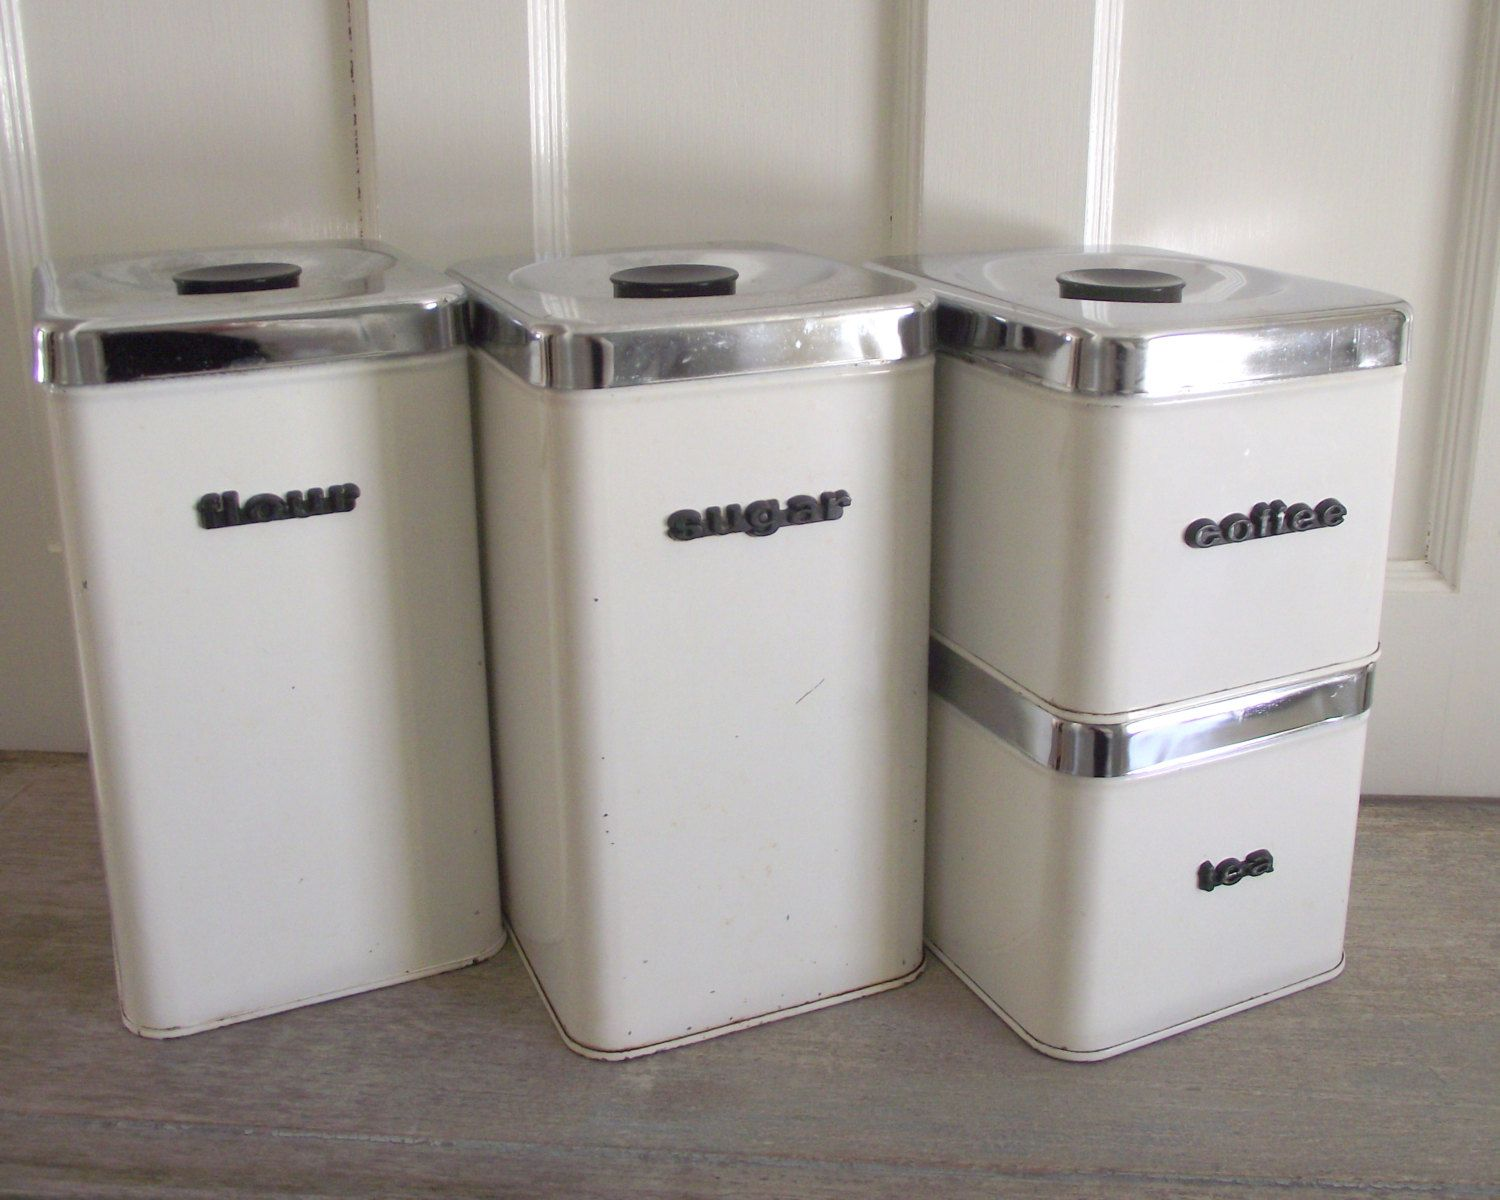 1950s kitchen decor white and chrome metal canister set queen line a r lite canisters 1950s mid century kitchen decor vintage retro kitchen storage